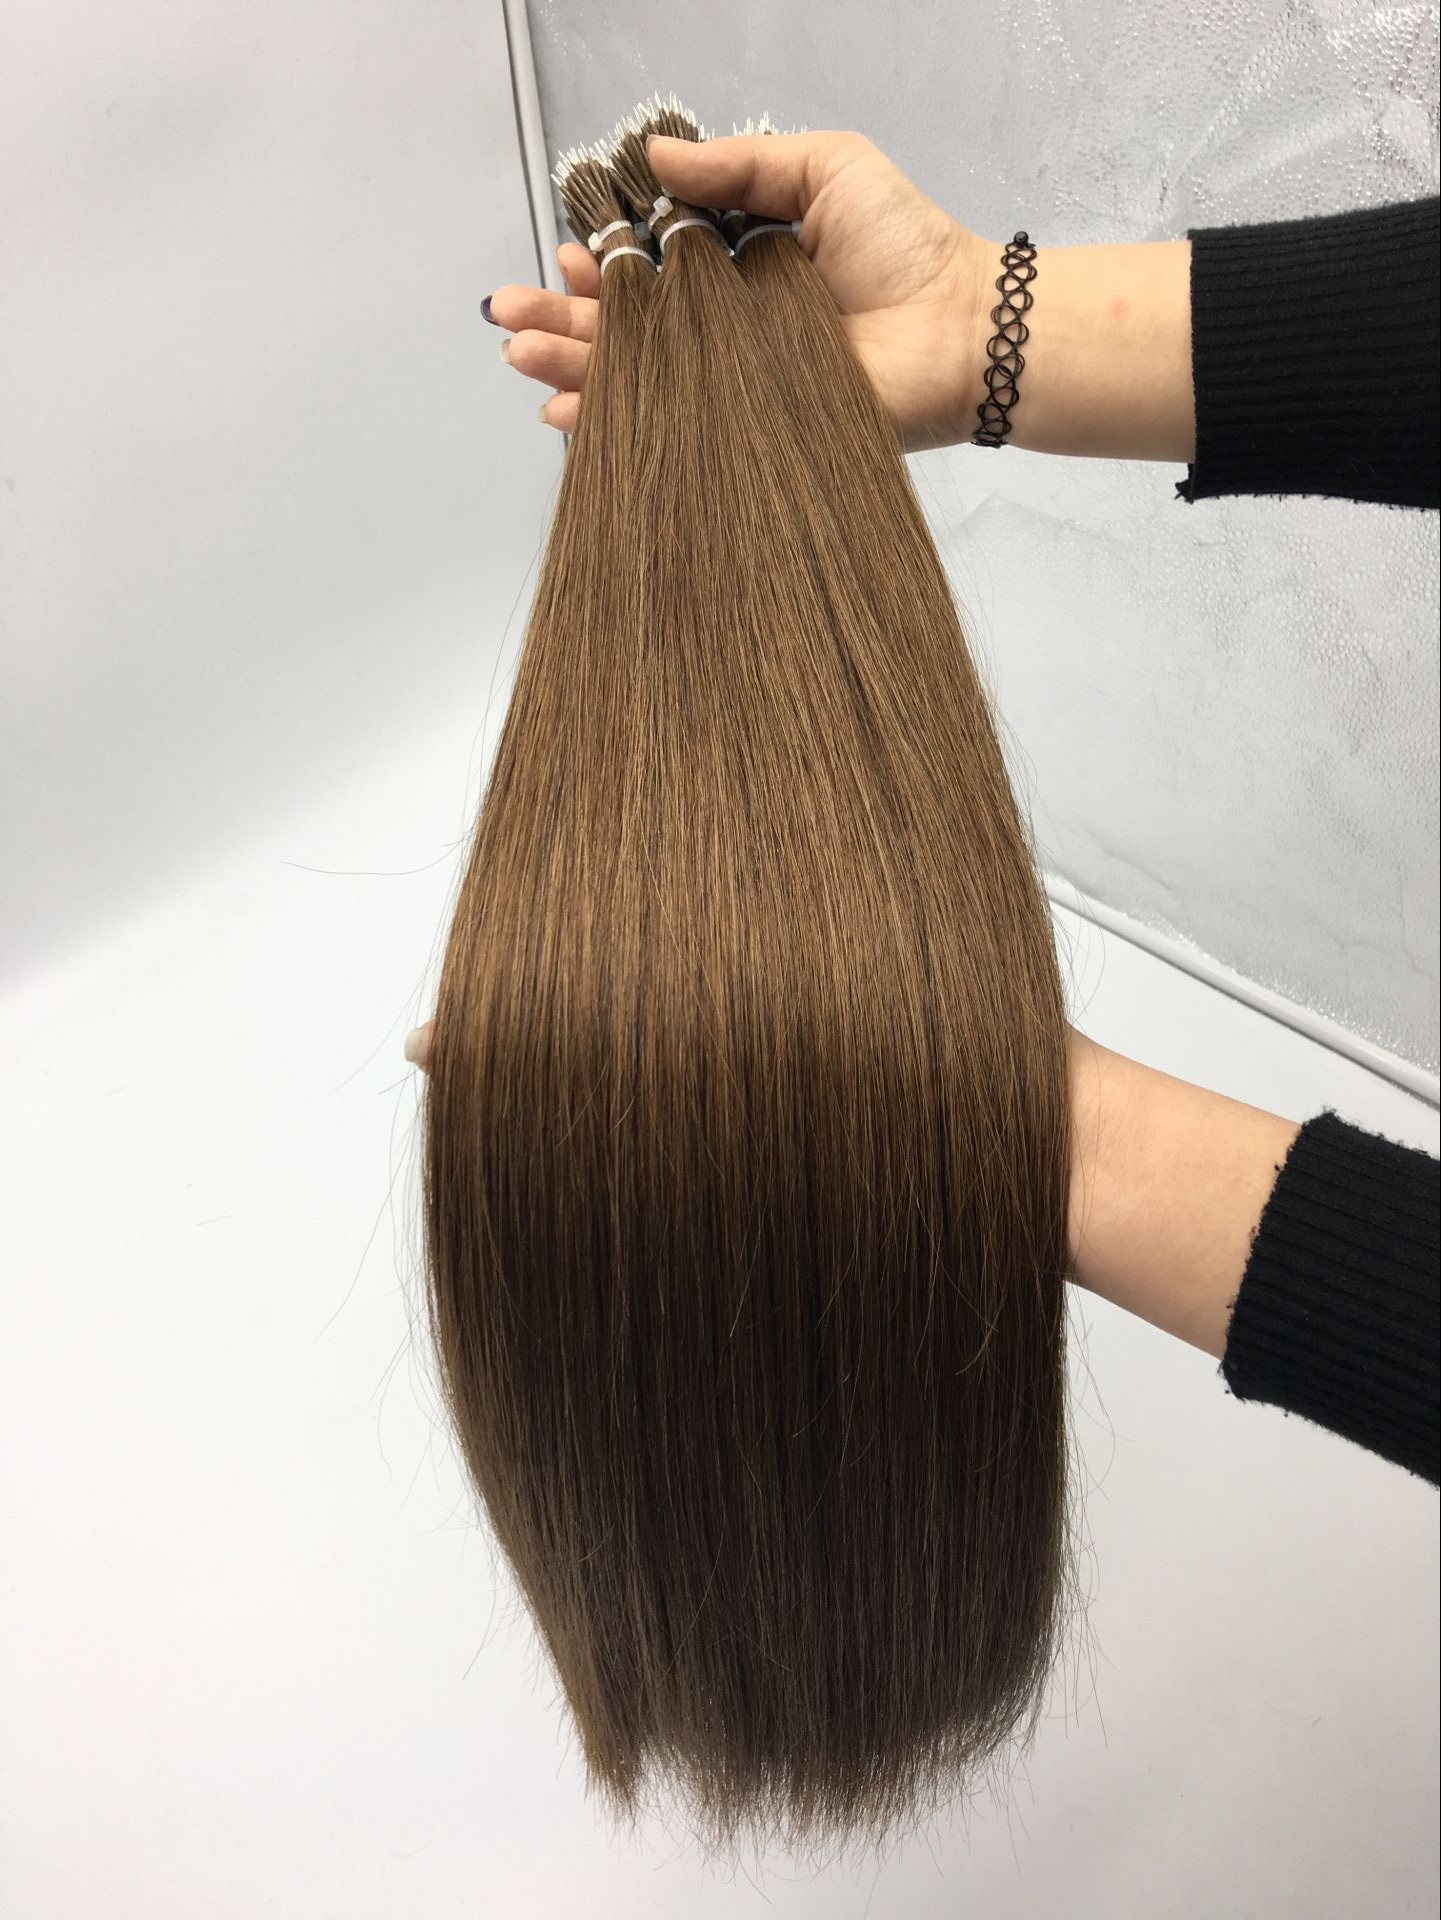 Know More About The Best Pre Bonded Fusion Hair Extensions